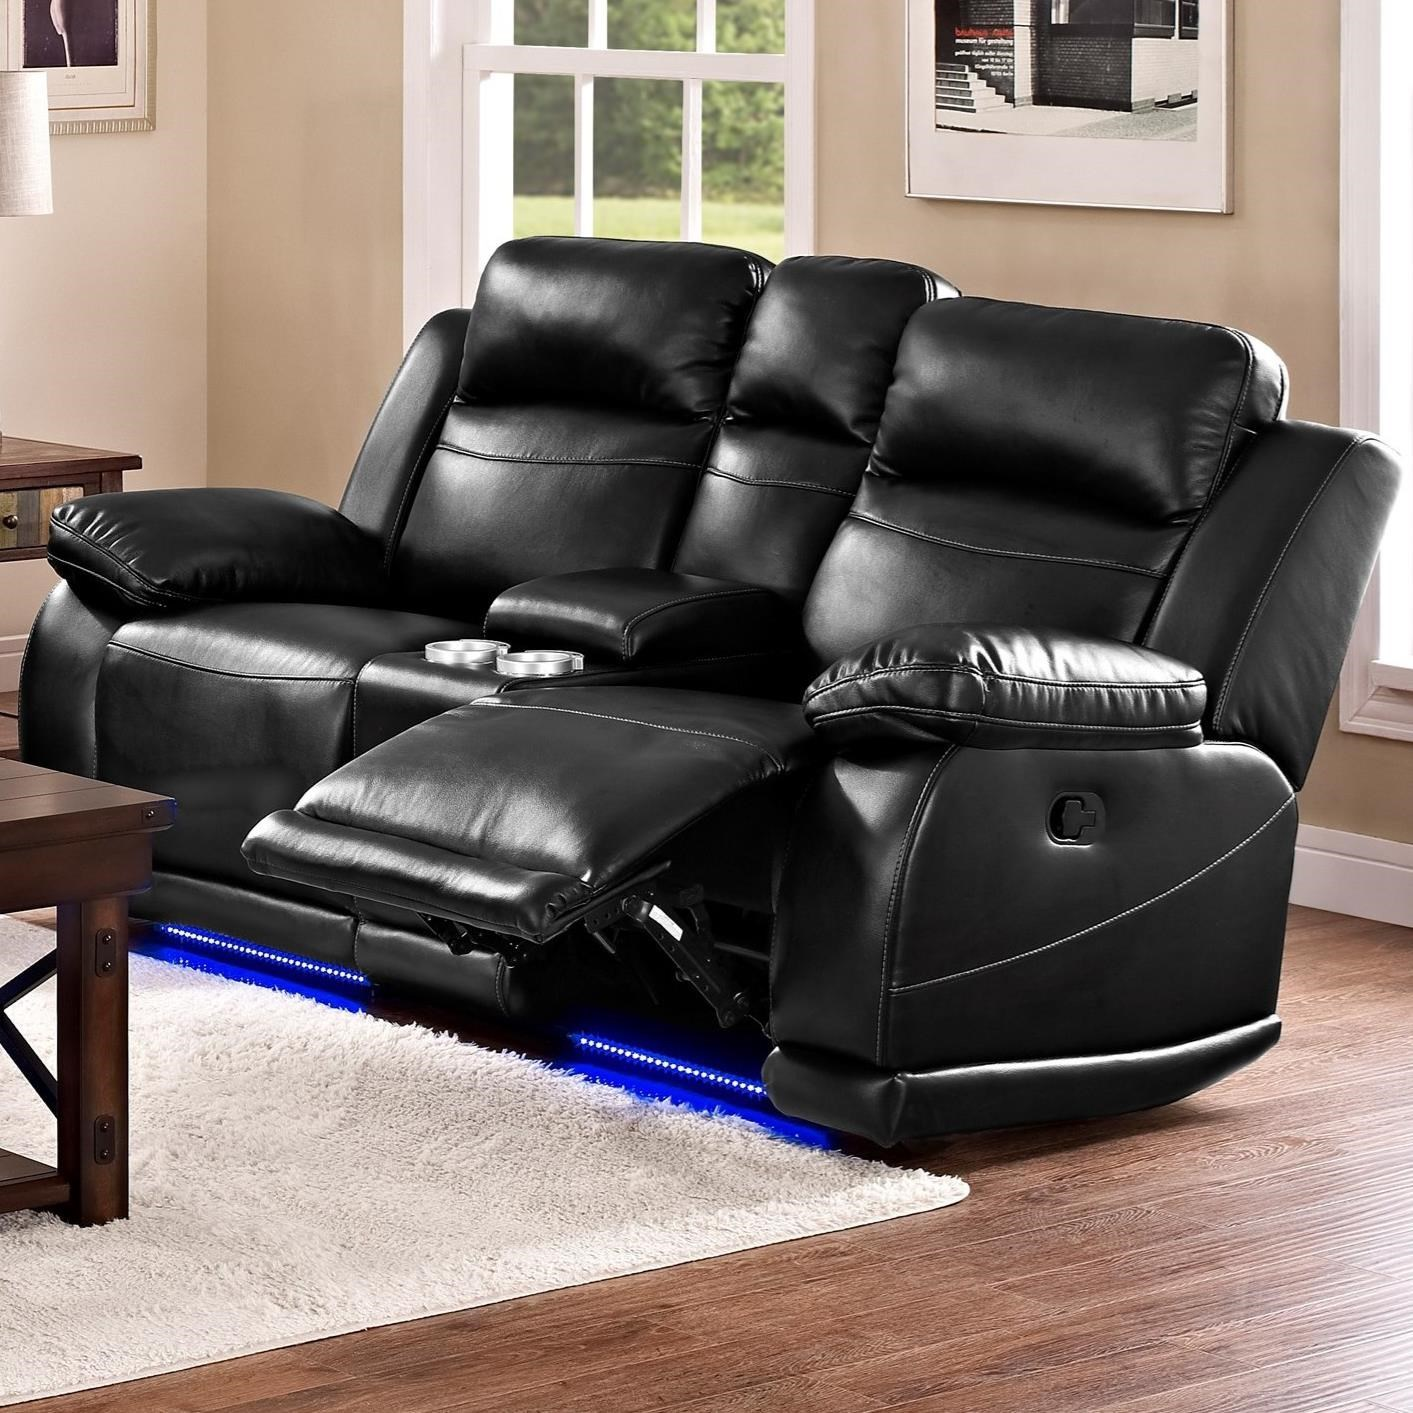 New Classic Jet Casual Power Reclining Loveseat with Console and Cup Holders & Jet Casual Power Reclining Loveseat with Console and Cup Holders ... islam-shia.org